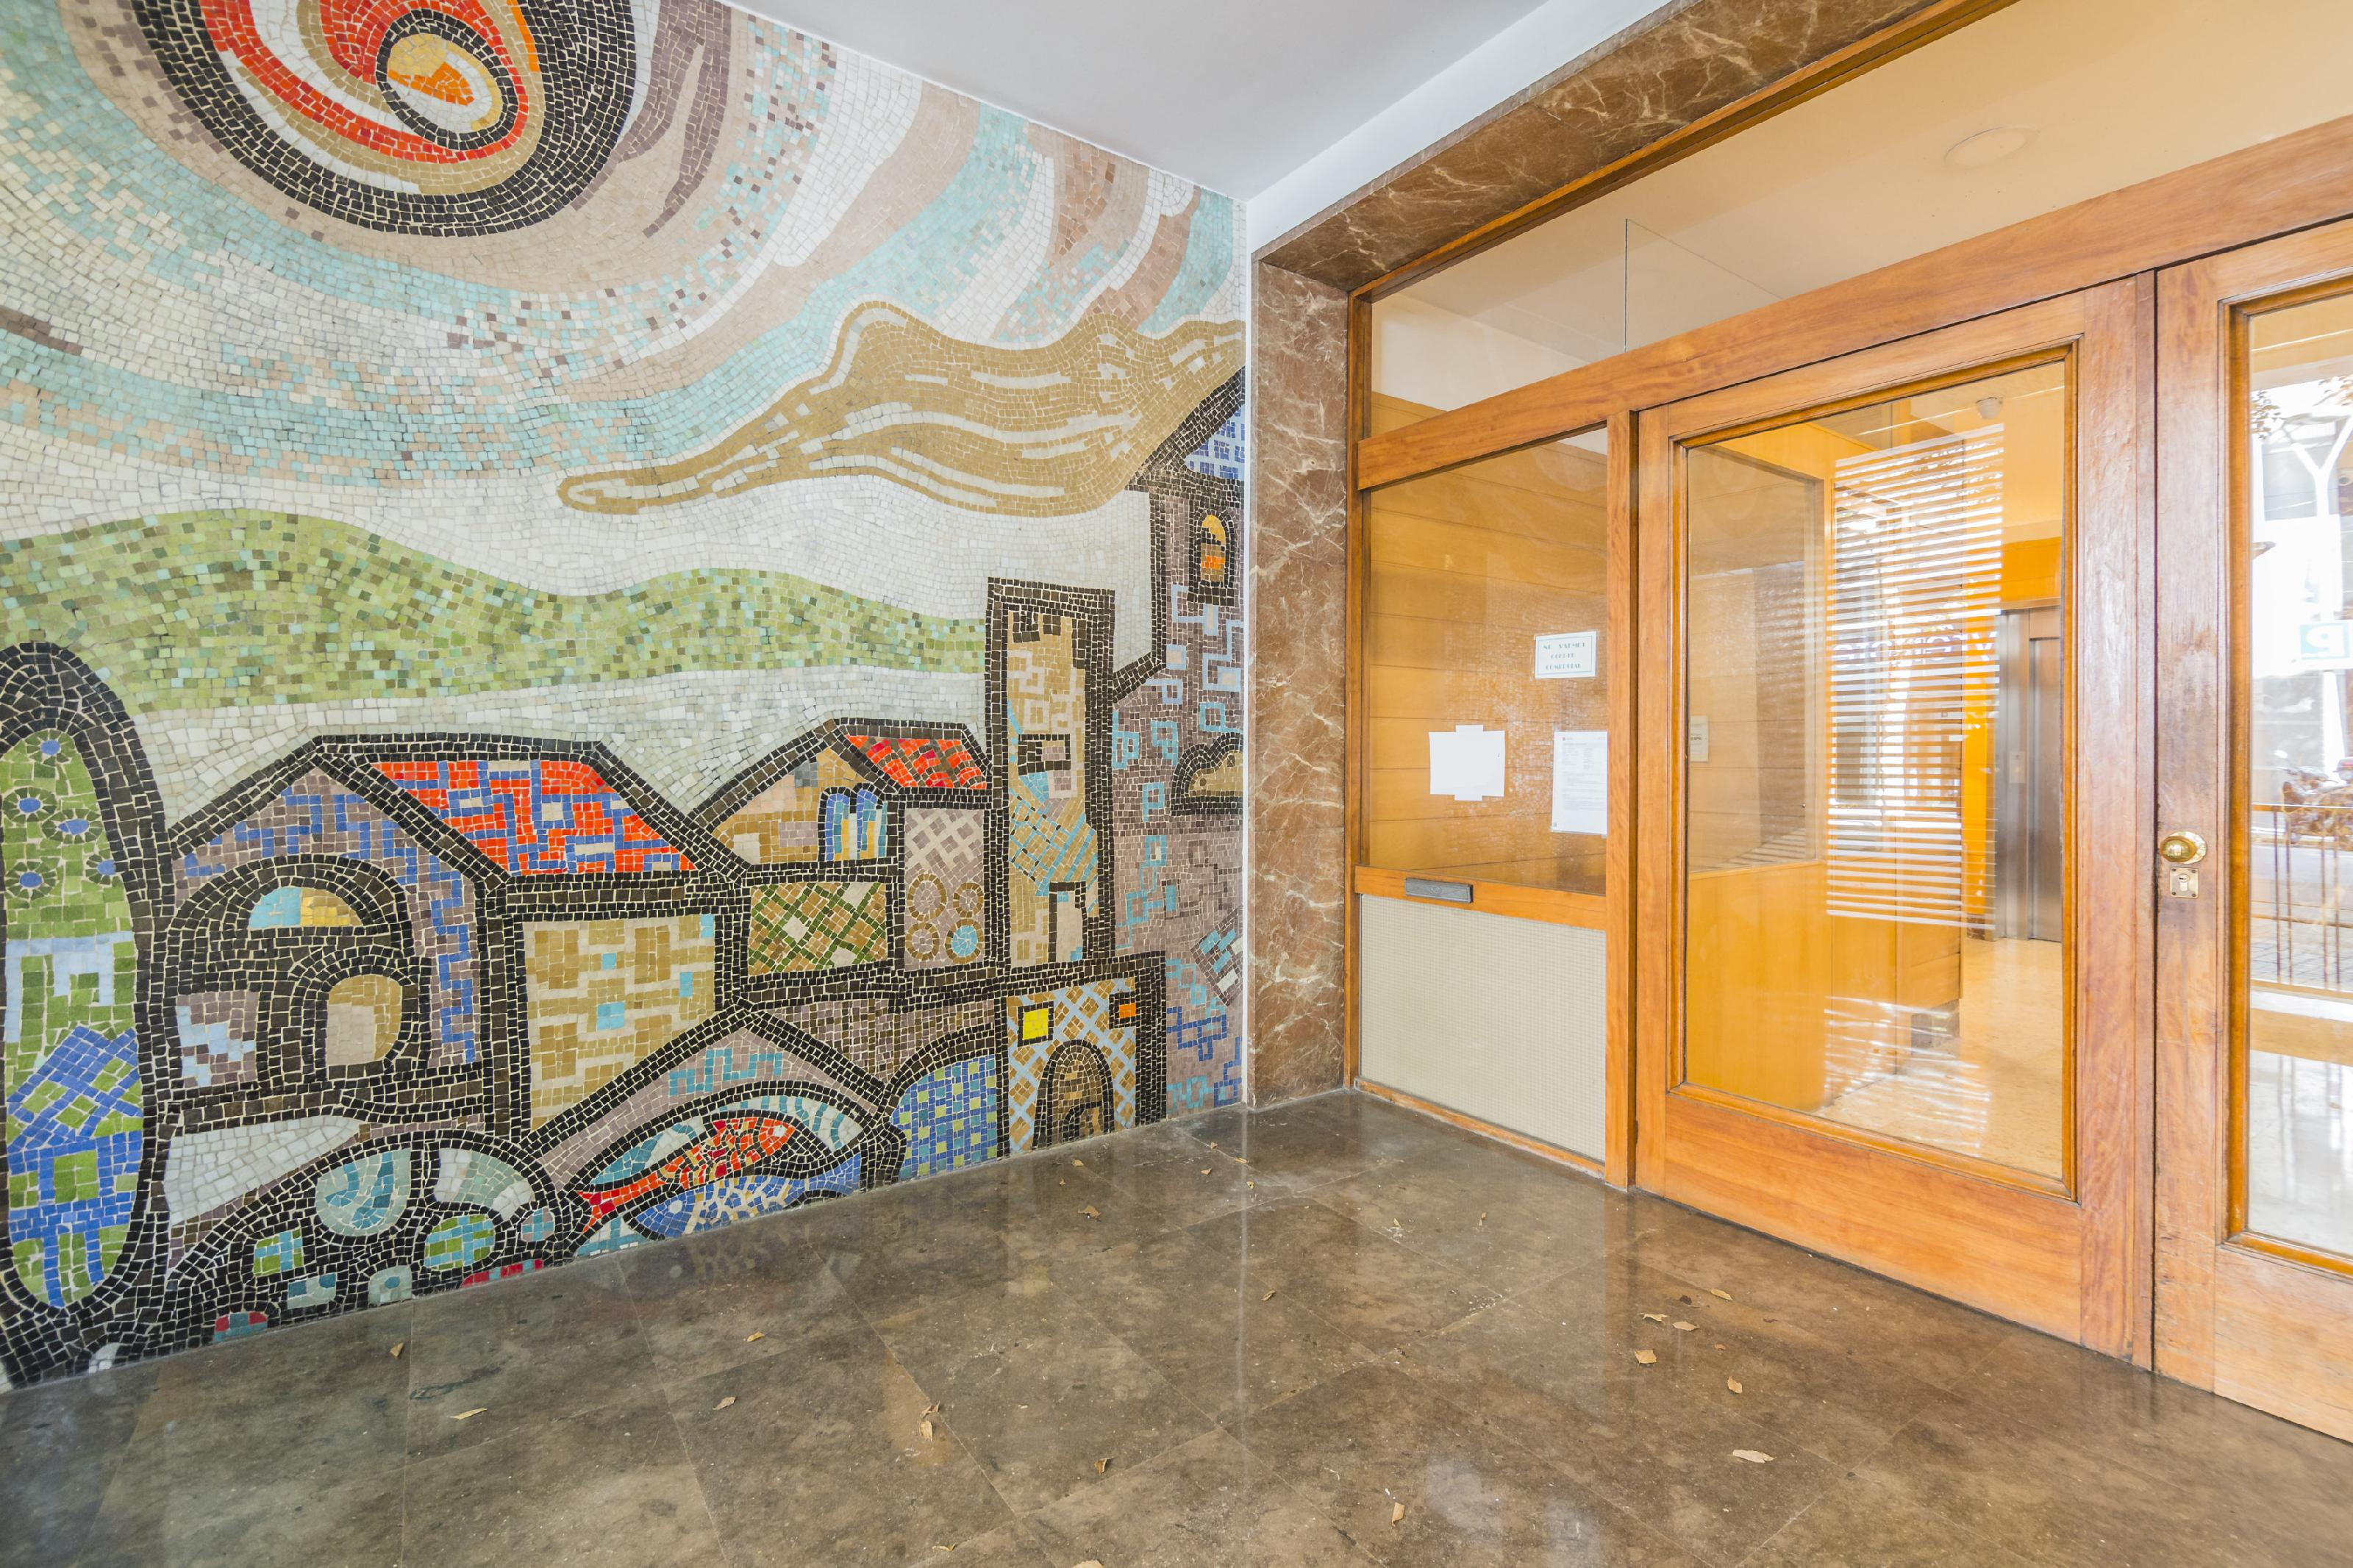 245687 Flat for sale in Eixample, Fort Pienc 18